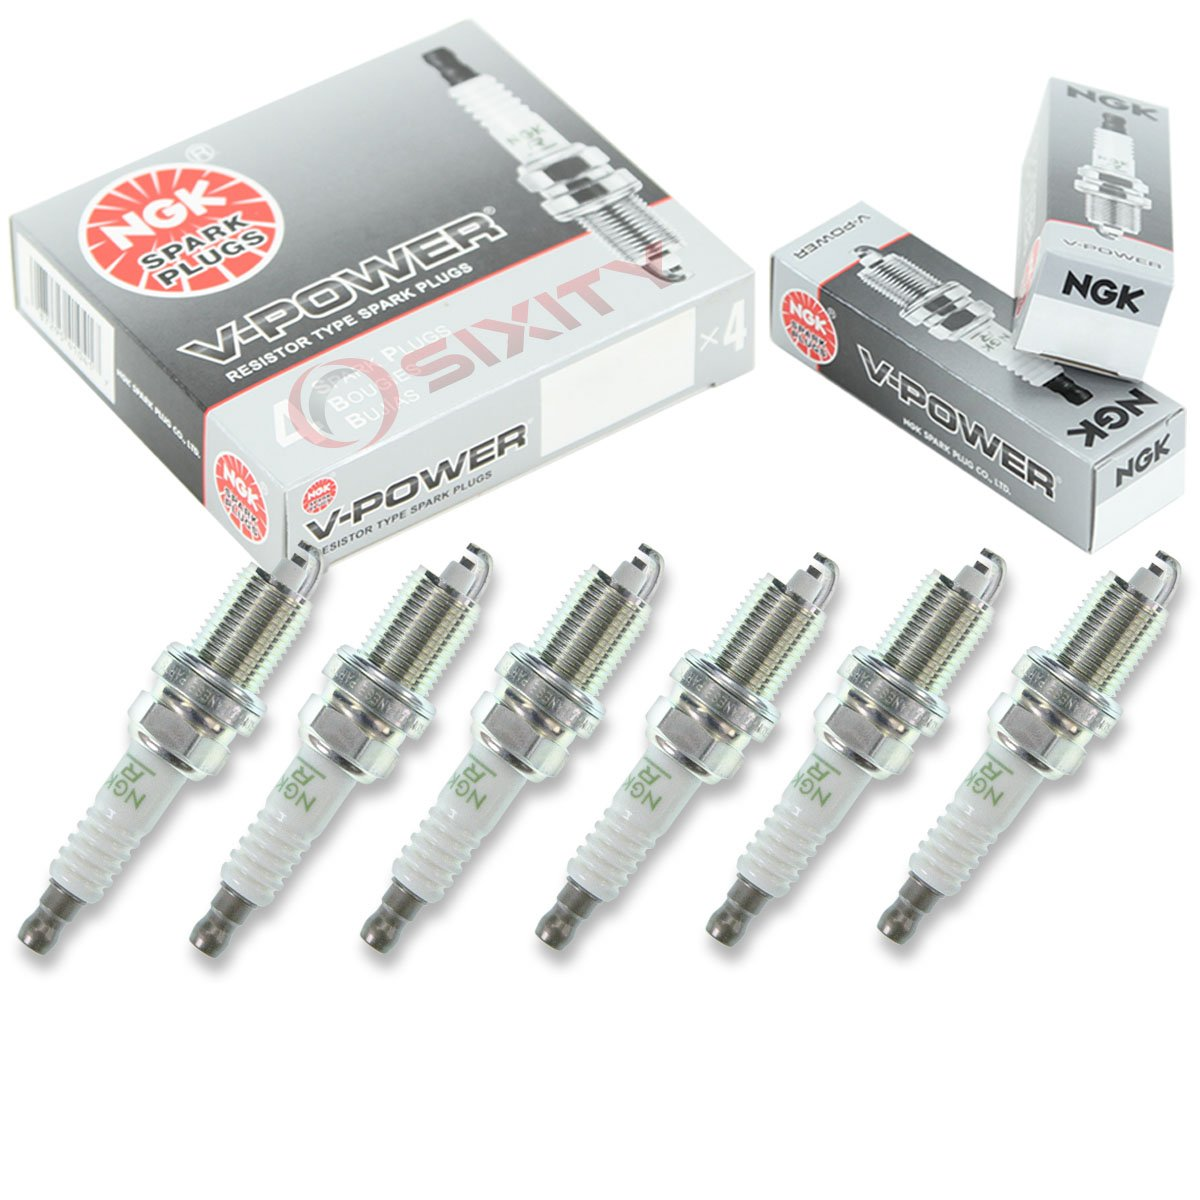 Amazon.com: NGK V-Power 6pcs Spark Plugs Jeep Liberty 02-12 3.7L V6 Kit Set Tune Up: Automotive